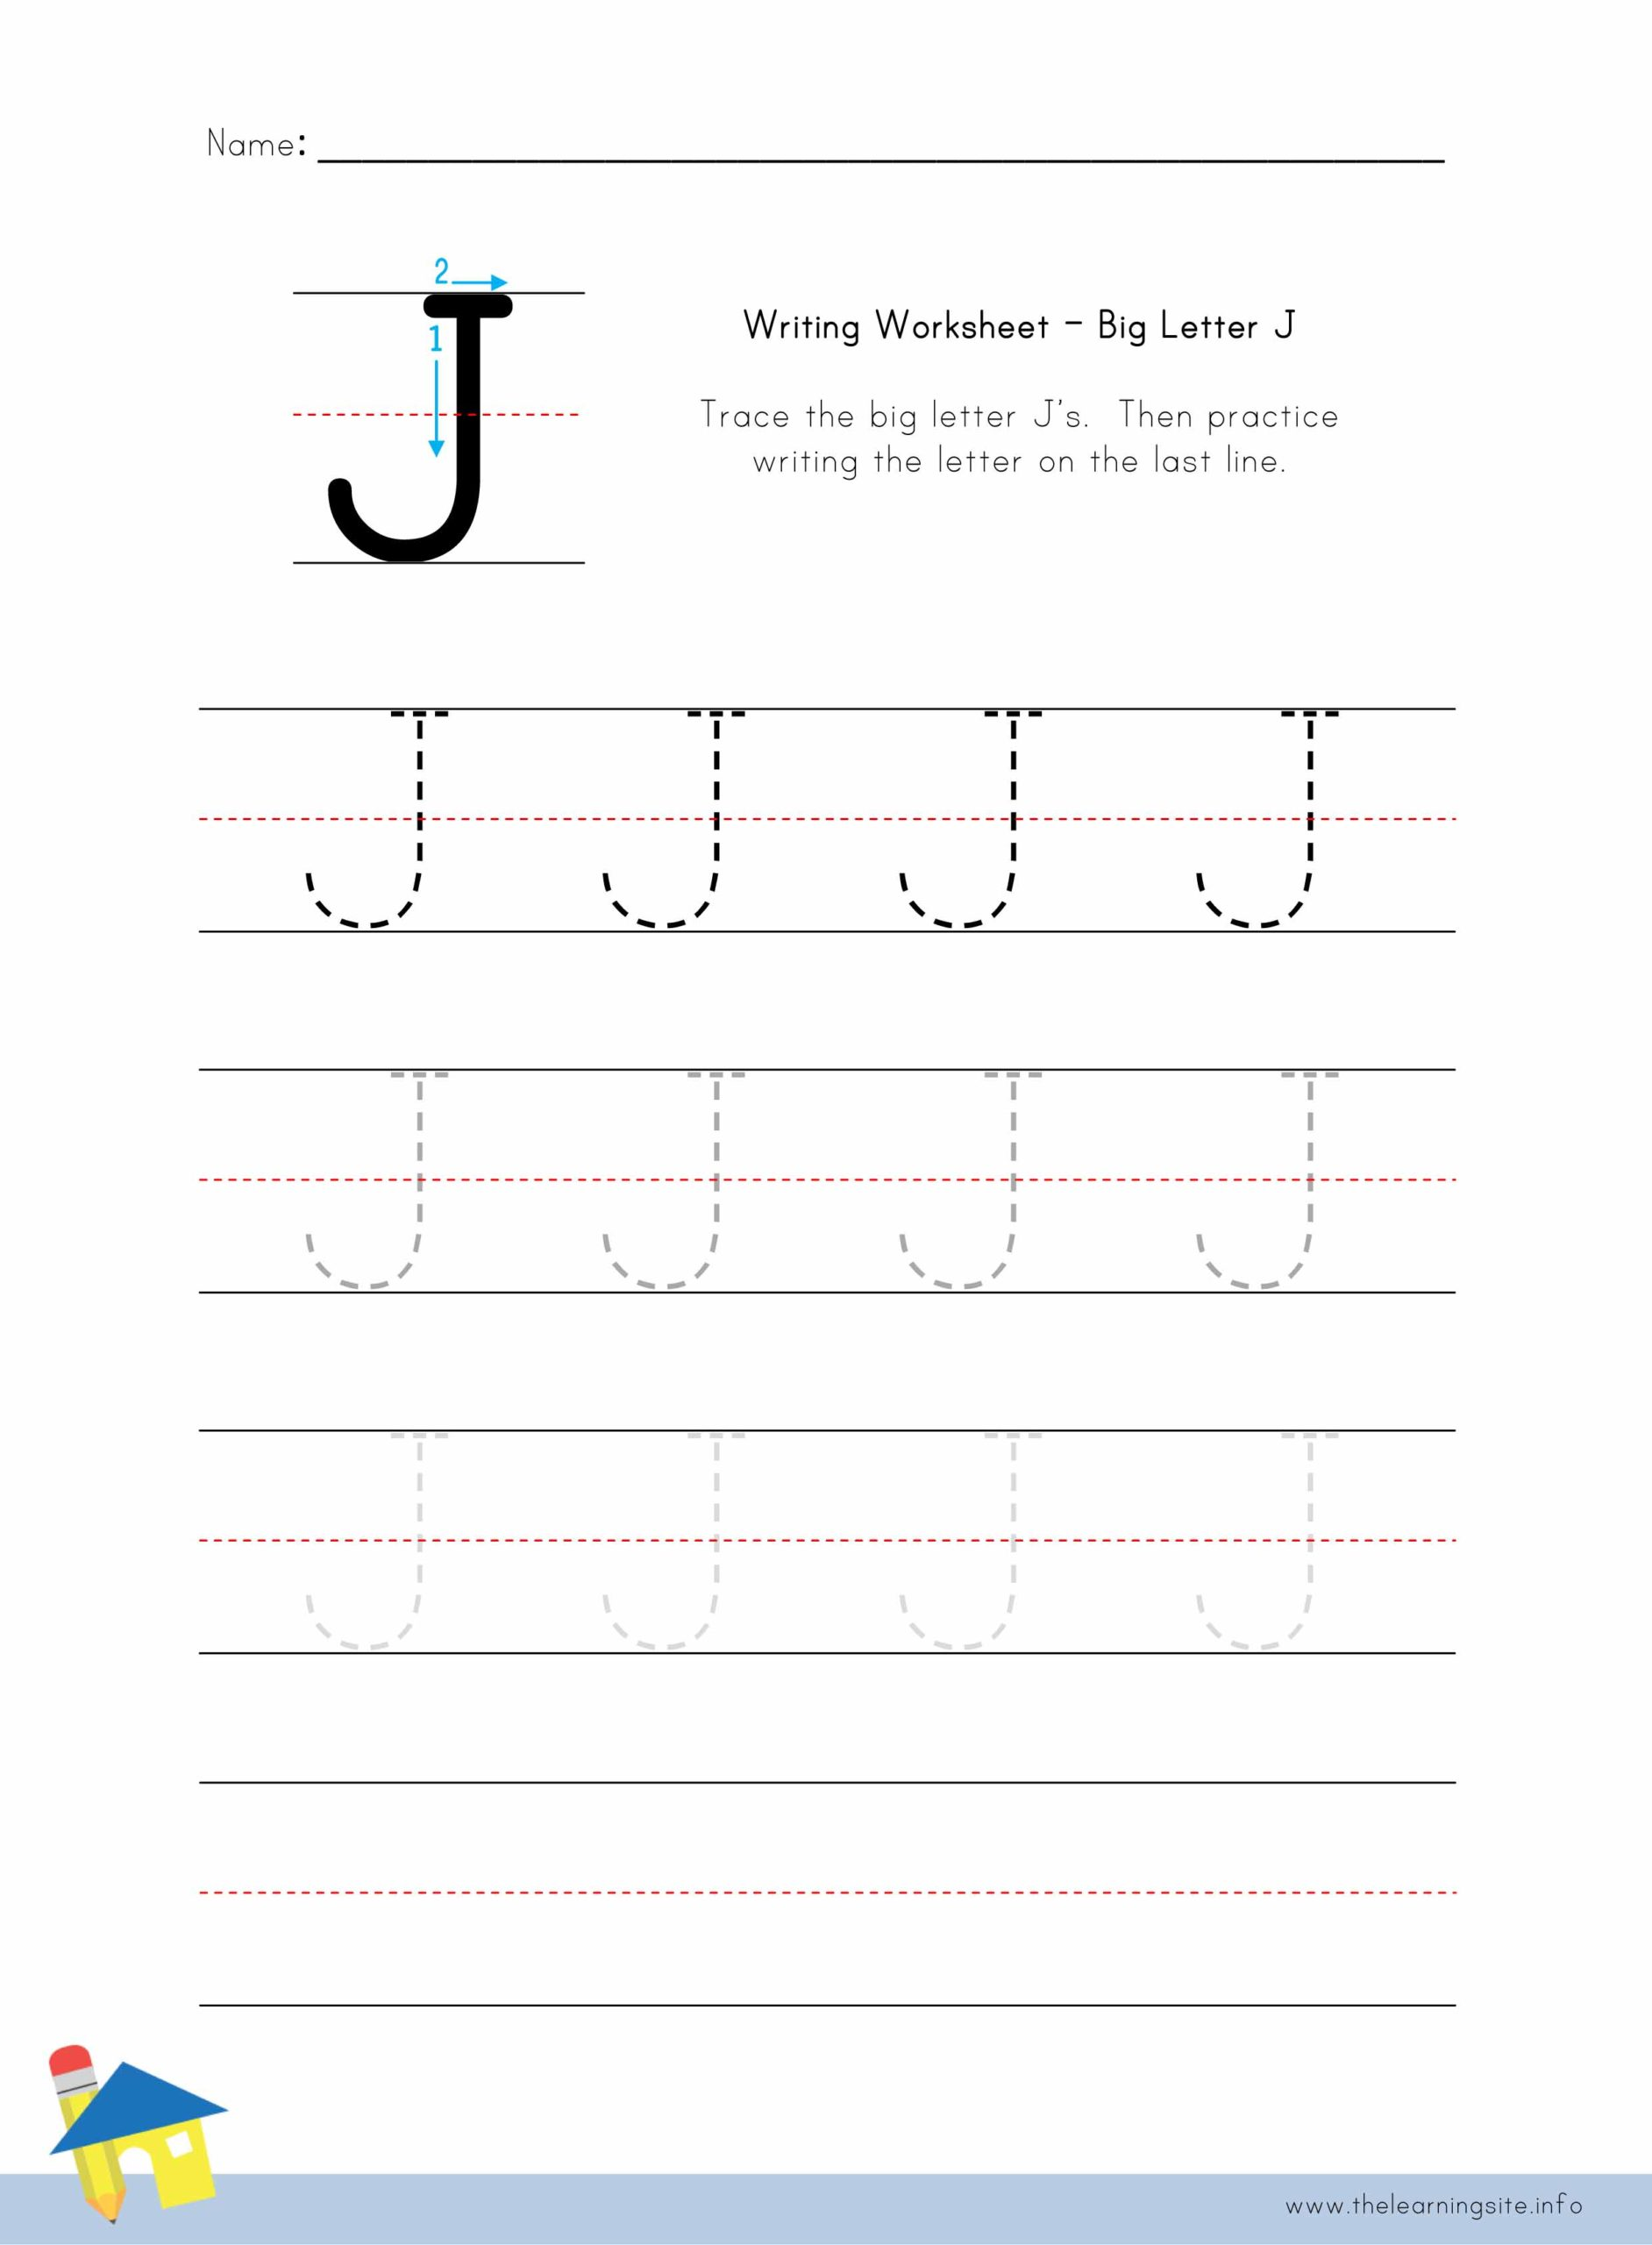 Big Letter J Writing Worksheet The Learning Site